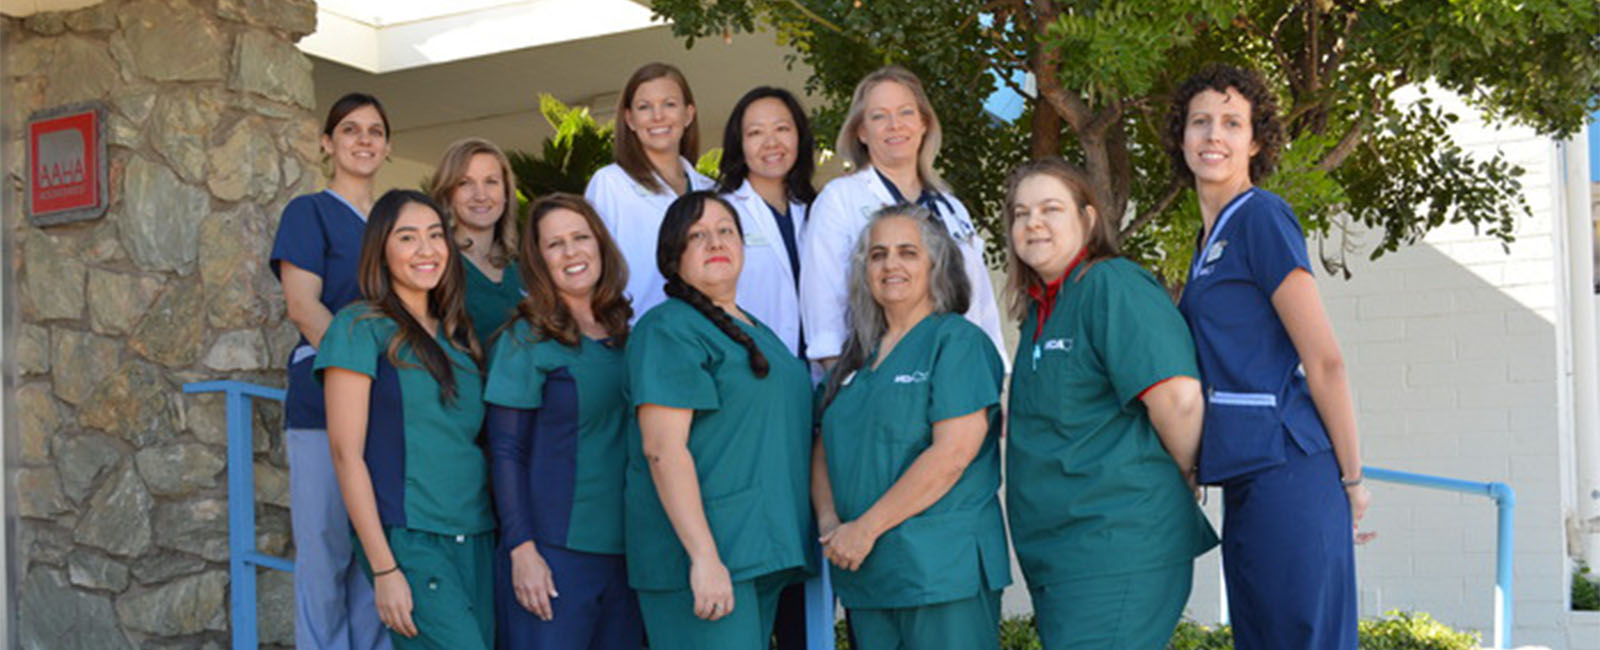 Homepage Team Picture of VCA Animal Medical Center of Tucson